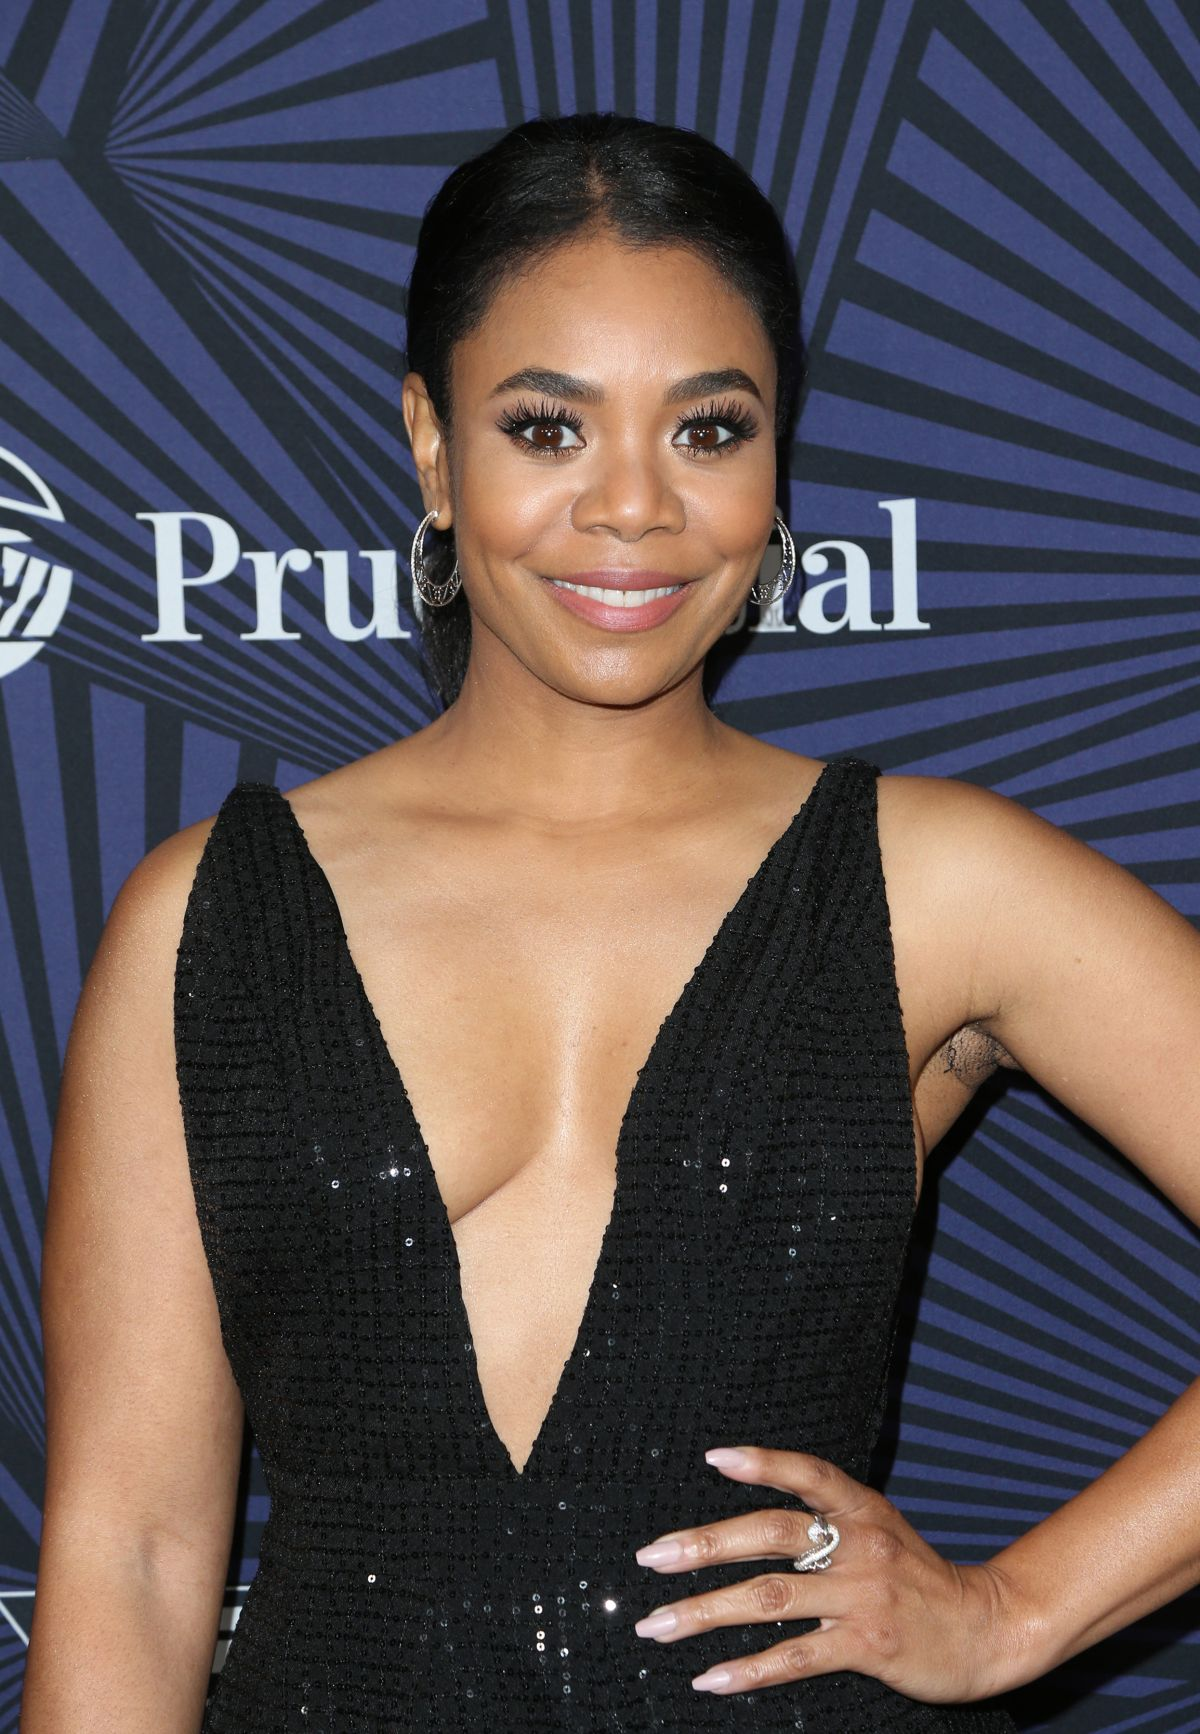 REGINA HALL at Bet's 2017 American Black Film Festival Honors Awards in Beverly Hills 02/17/2017